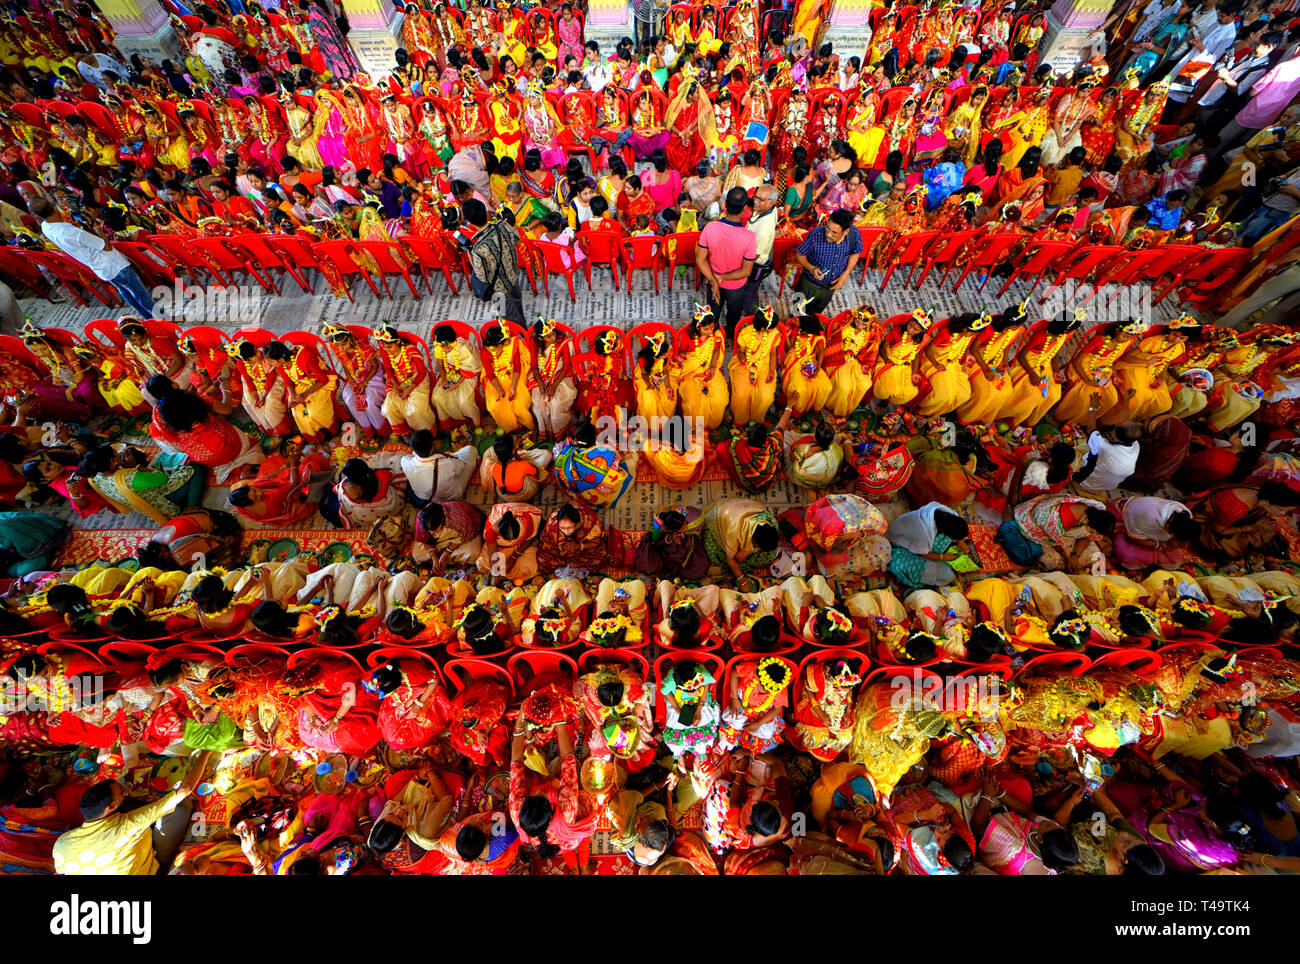 Kolkata, India. 14th Apr 2019. Aerial view of the inside adyapith Temple showing around 2000 young girls as they participate in Kumari Puja this year. Kumari Puja is an Indian Hindu Tradition mainly celebrated during the Durga Puja/Basanti Puja/Navratri according to Hindu calendar. Kumari actually describes a young virgin girl from the age 1 to 16 who is getting worshipped during the transition of Ashtami/Navami tithi of Durga Puja/Navaratri according to Hindu mythology. Credit: SOPA Images Limited/Alamy Live News - Stock Image